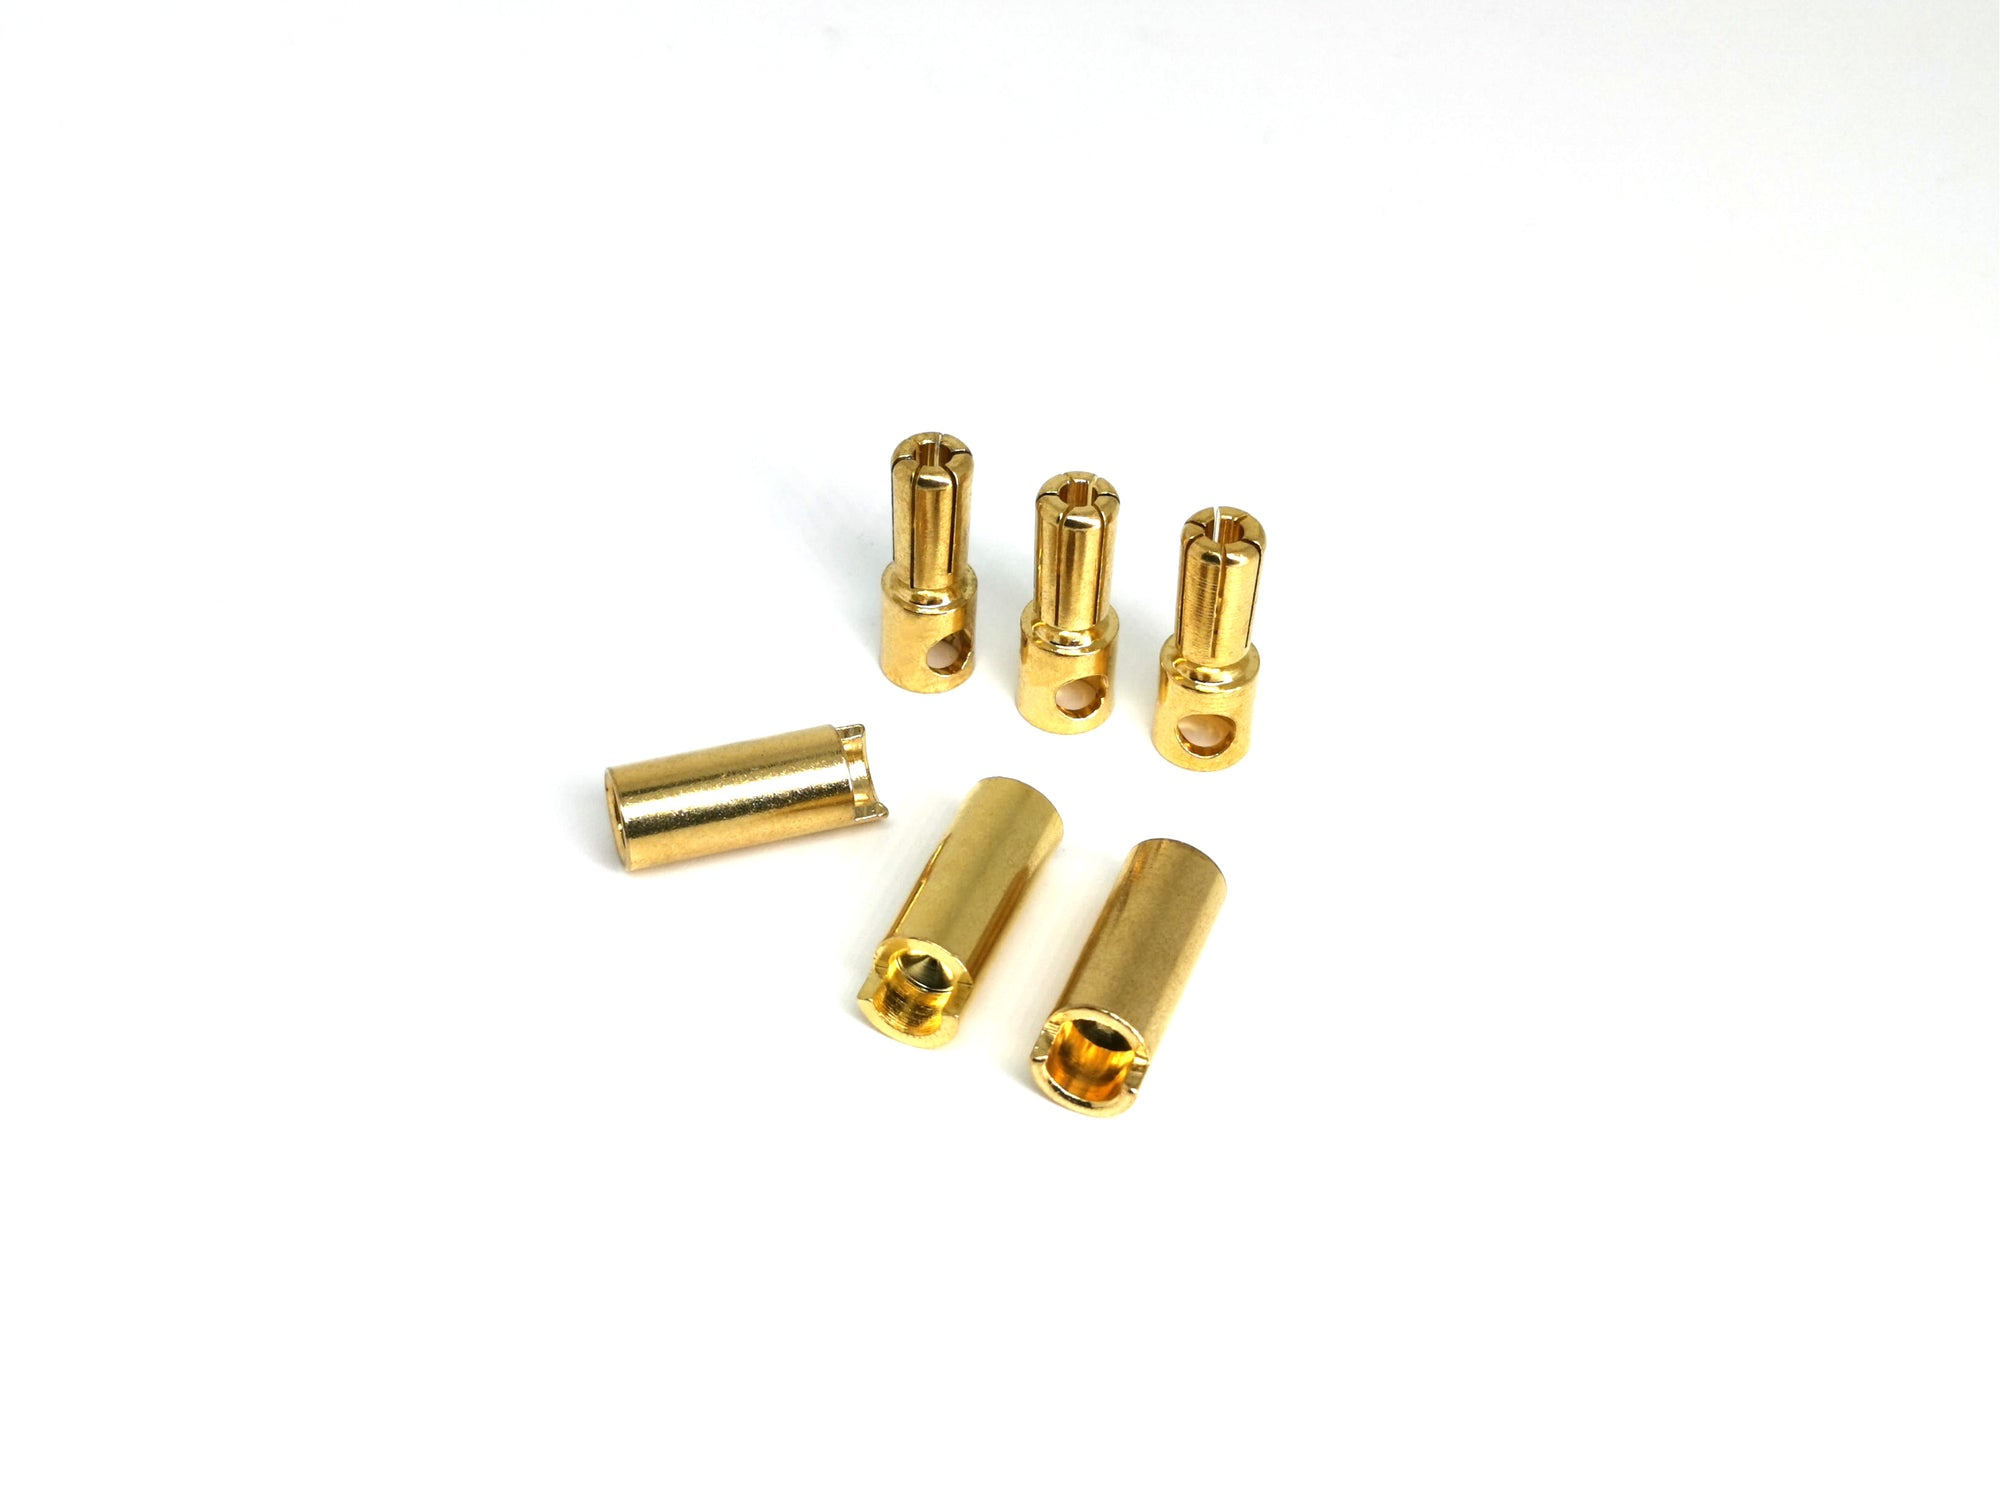 5.5MM  Bullet connector    3 pairs  Price